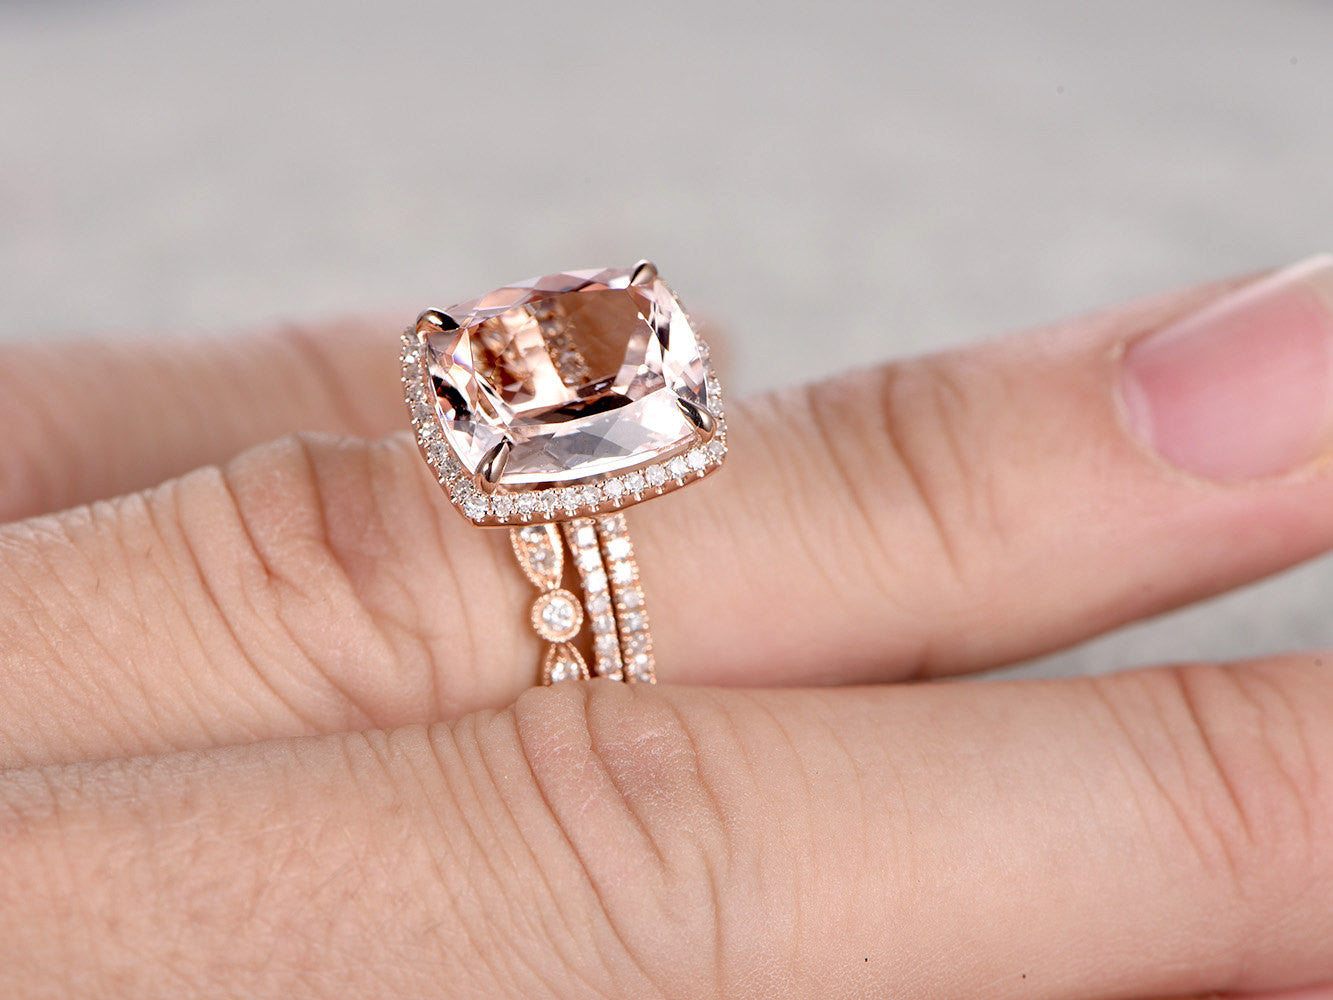 3pcs 10x12mm Cushion Morganite Bridal Ring Set,Engagement ring Rose gold,Diamond wedding band,Gemstone Promise Ring,Art Deco Stacking Band